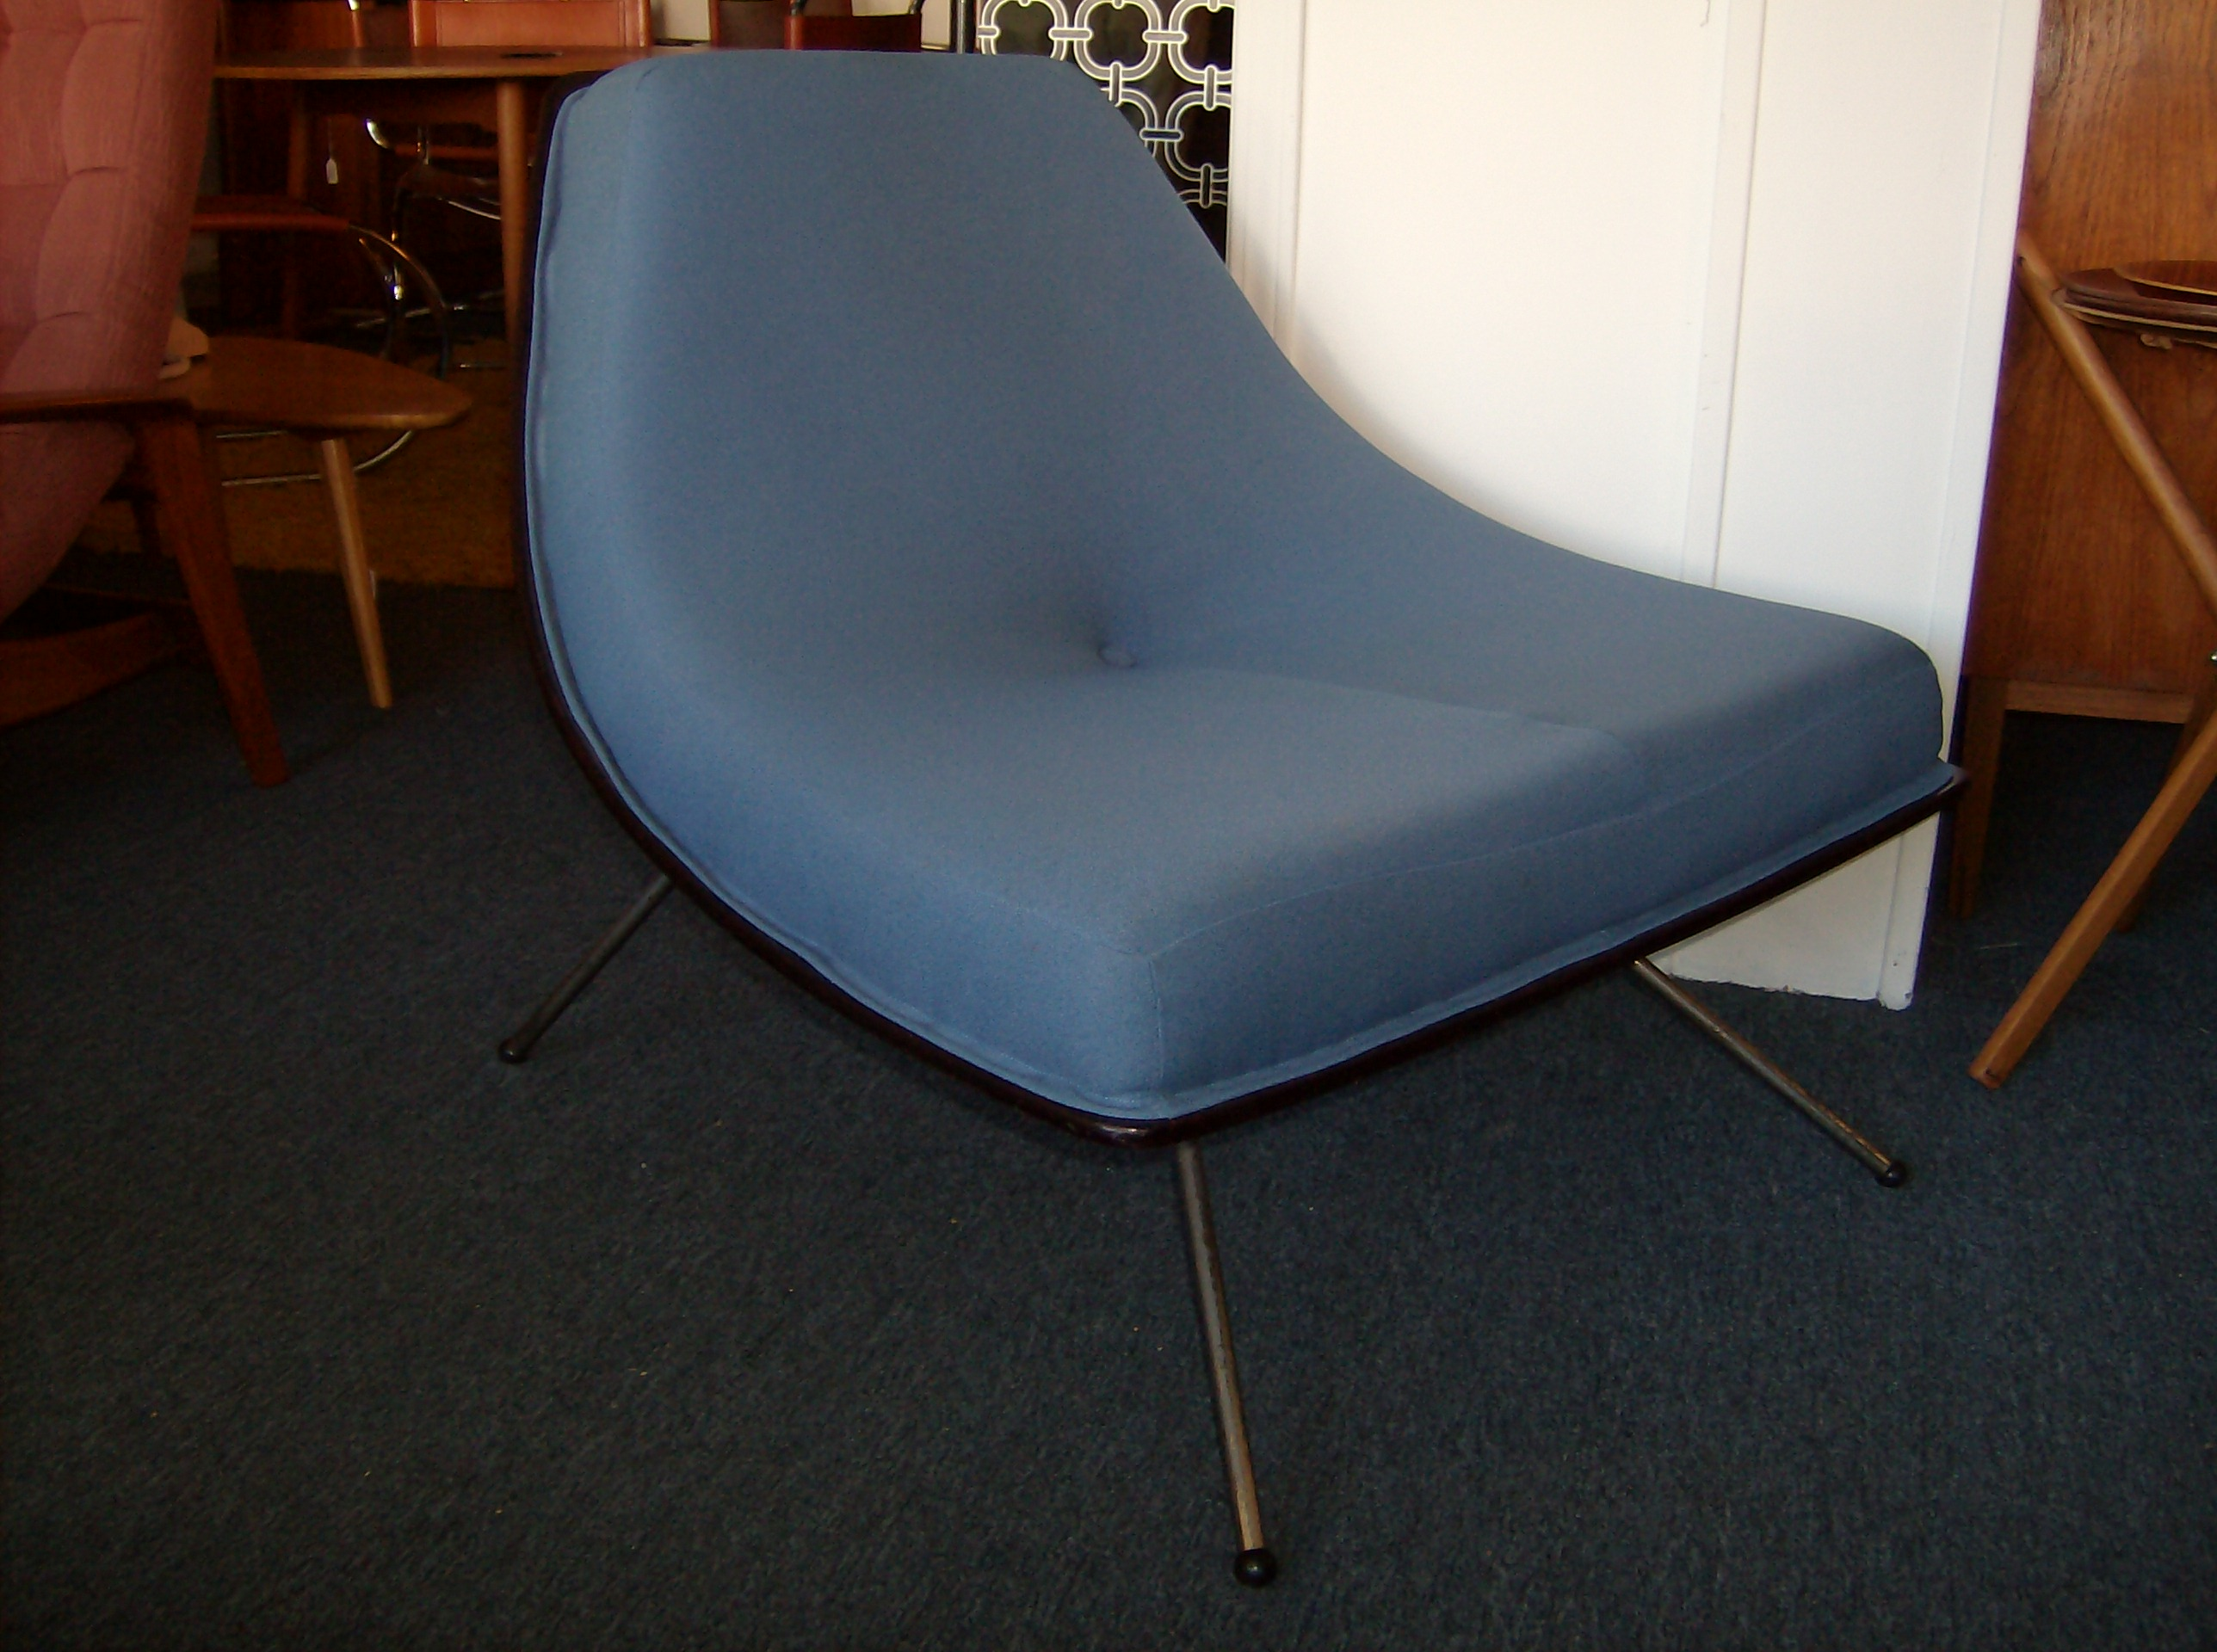 003. The Fabulous Find   Mid Century Modern Furniture Showroom in